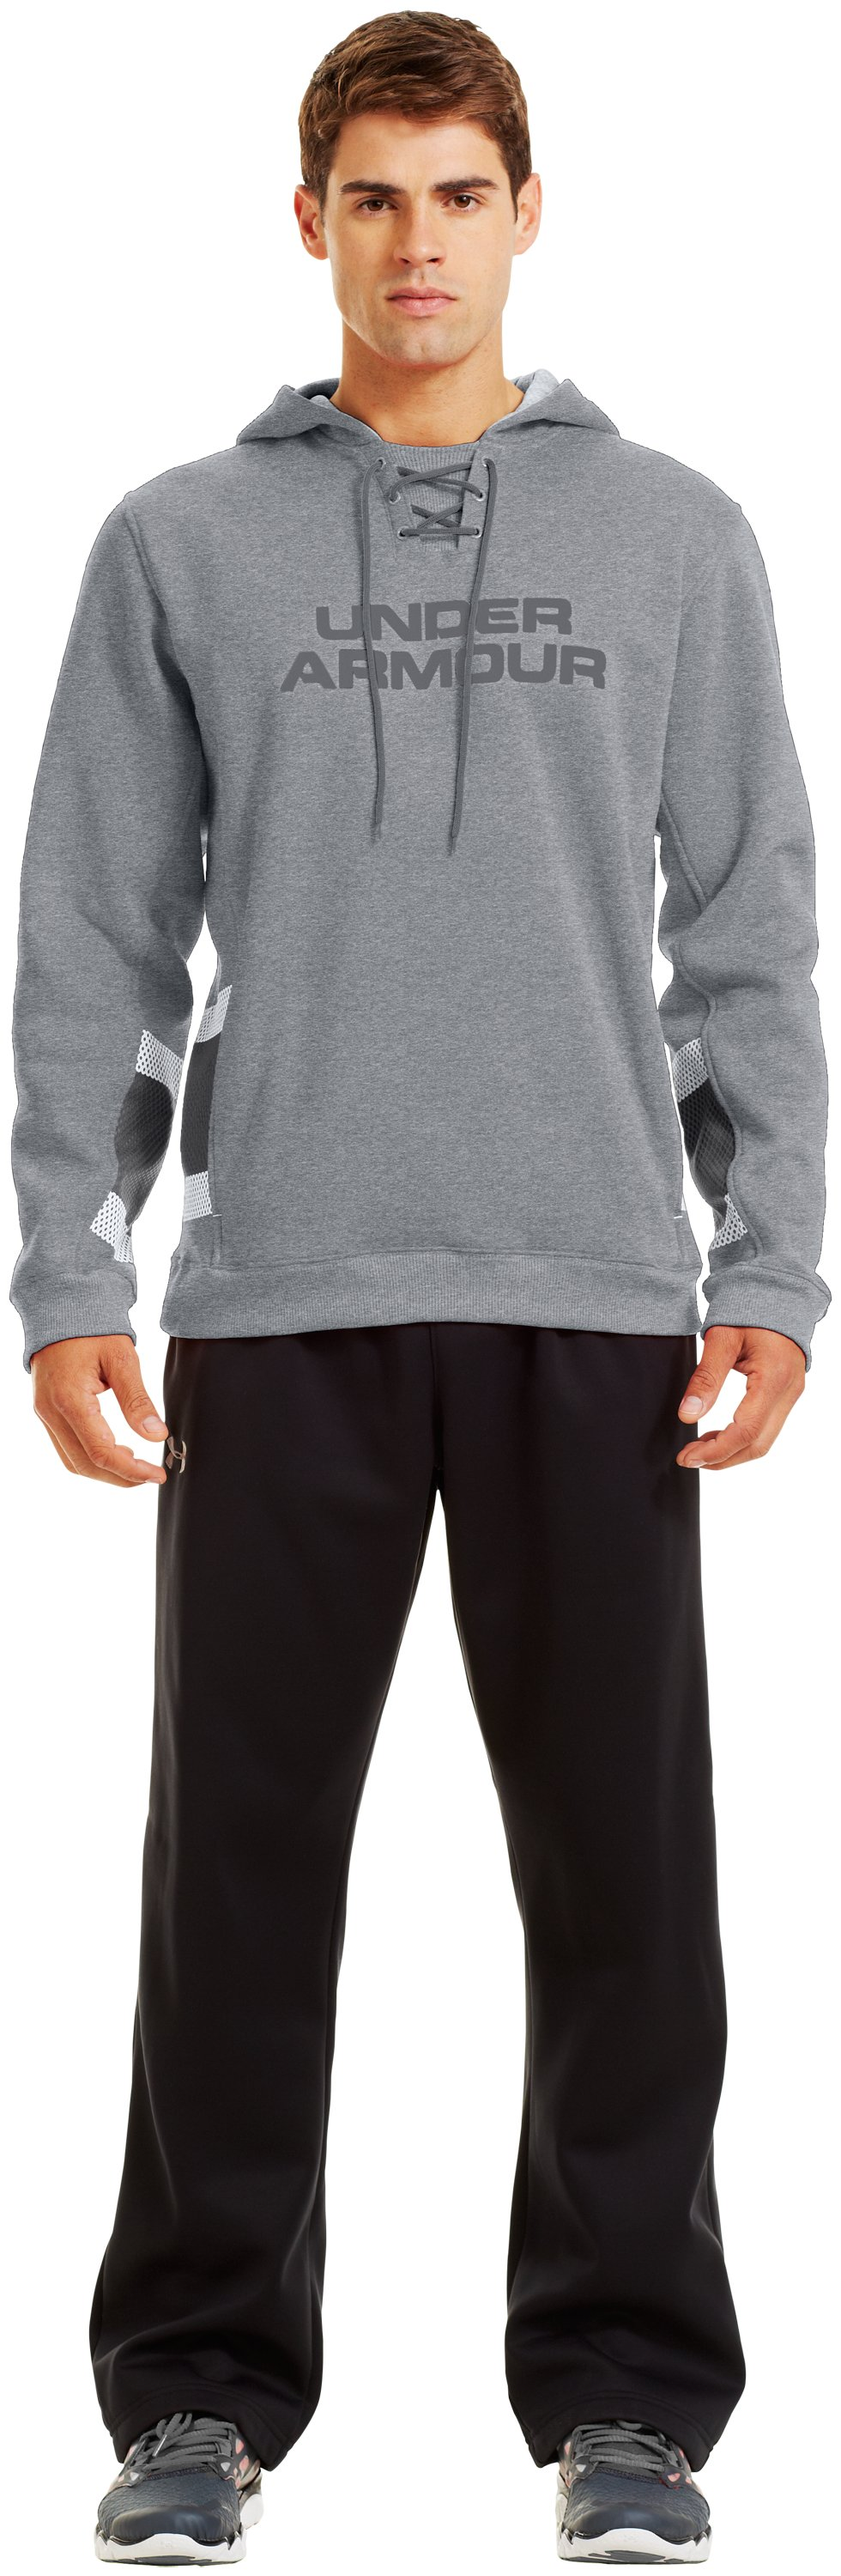 Men's Charged Cotton® Storm Chuck-A-Puck Hoodie, True Gray Heather, Front